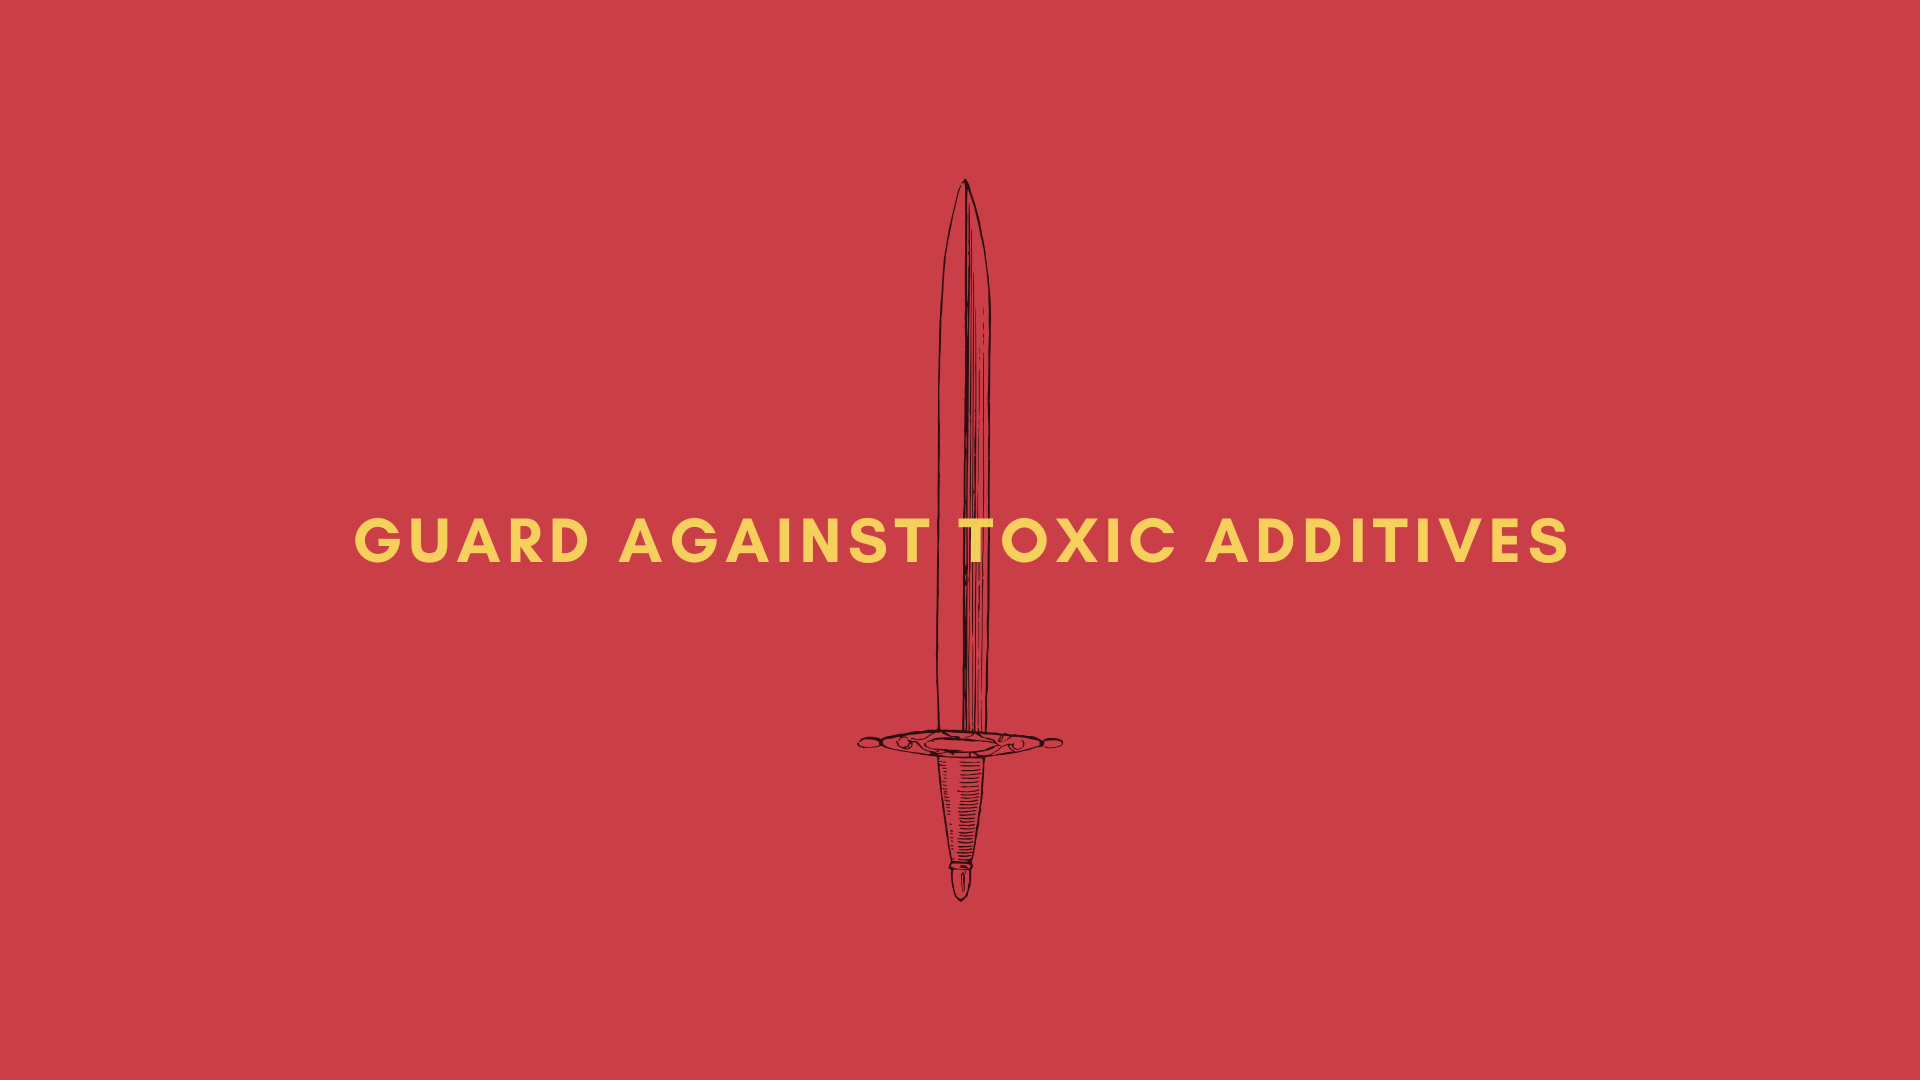 Guard Against Toxic Additives